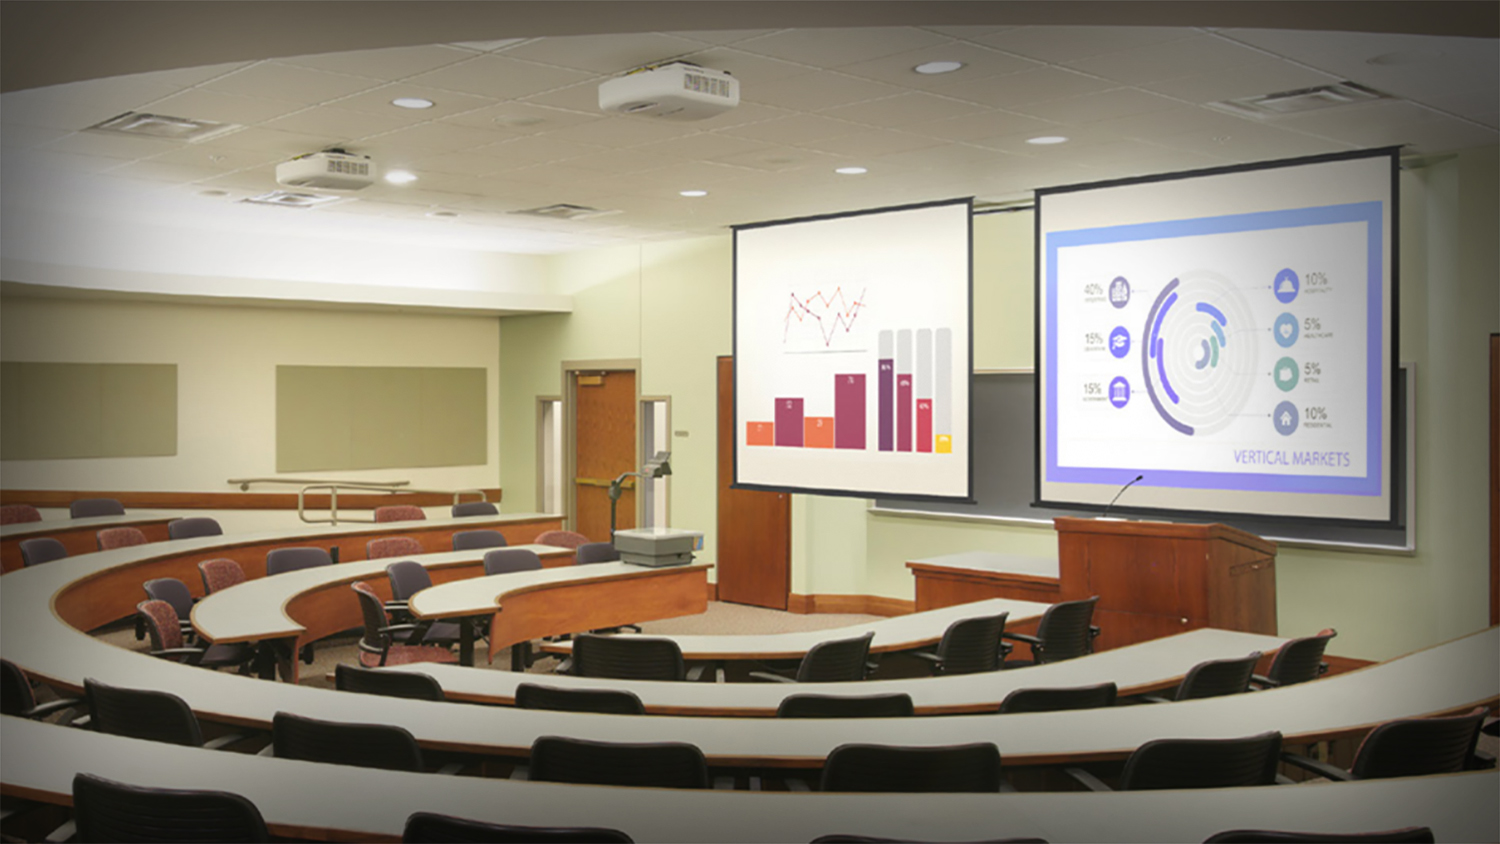 technology enhancement for classroom and campus, presentation, collaboration